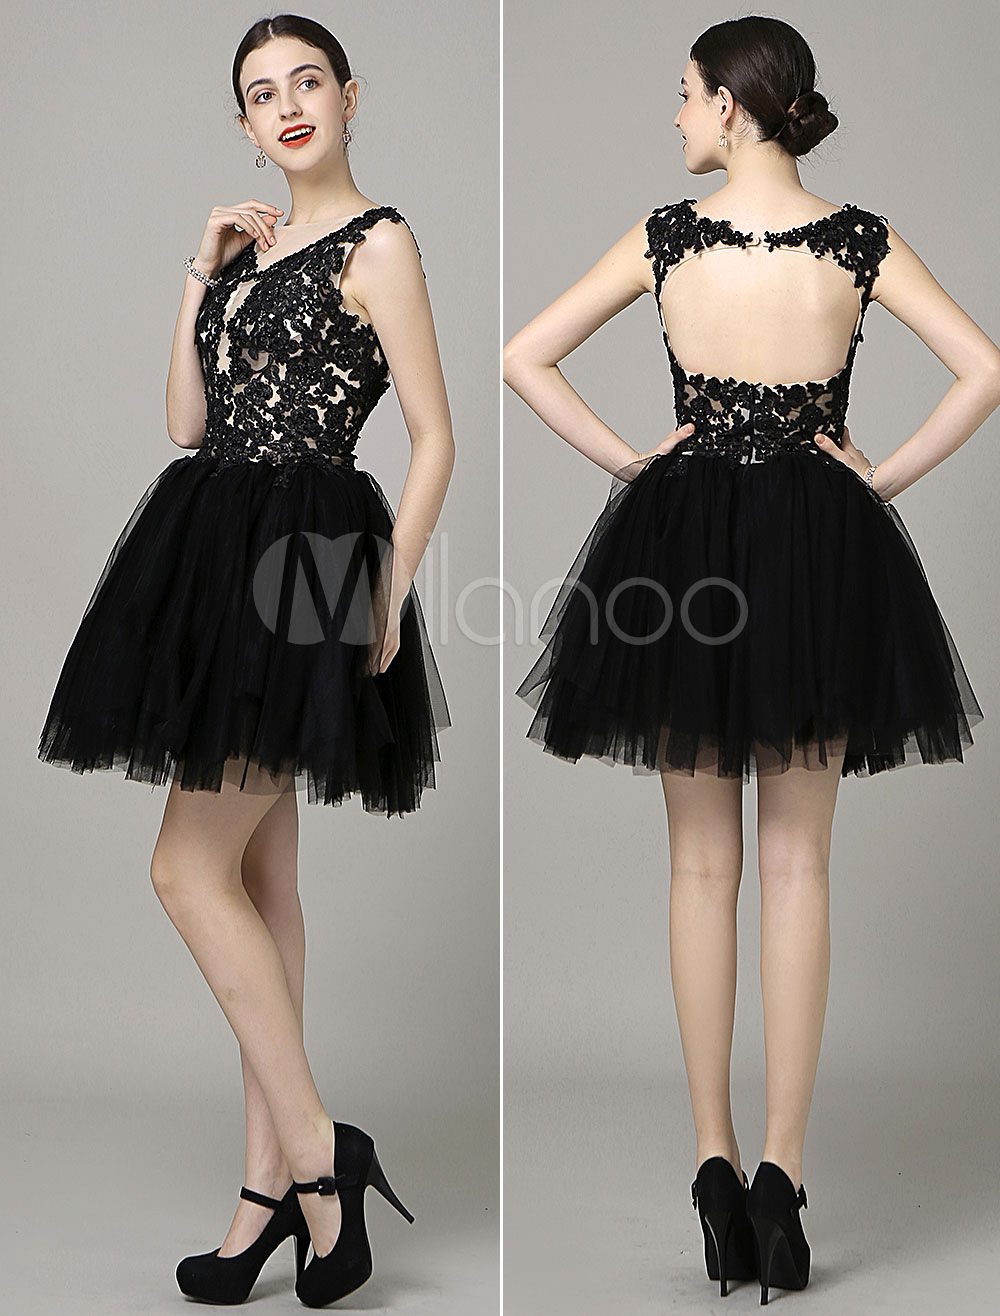 Buy Black Prom Dresses 2018 Short Backless Prom Dress A Line Lace Applique Beading Plunging Tulle Mini Cocktail Dress Milanoo for $141.29 in Milanoo store